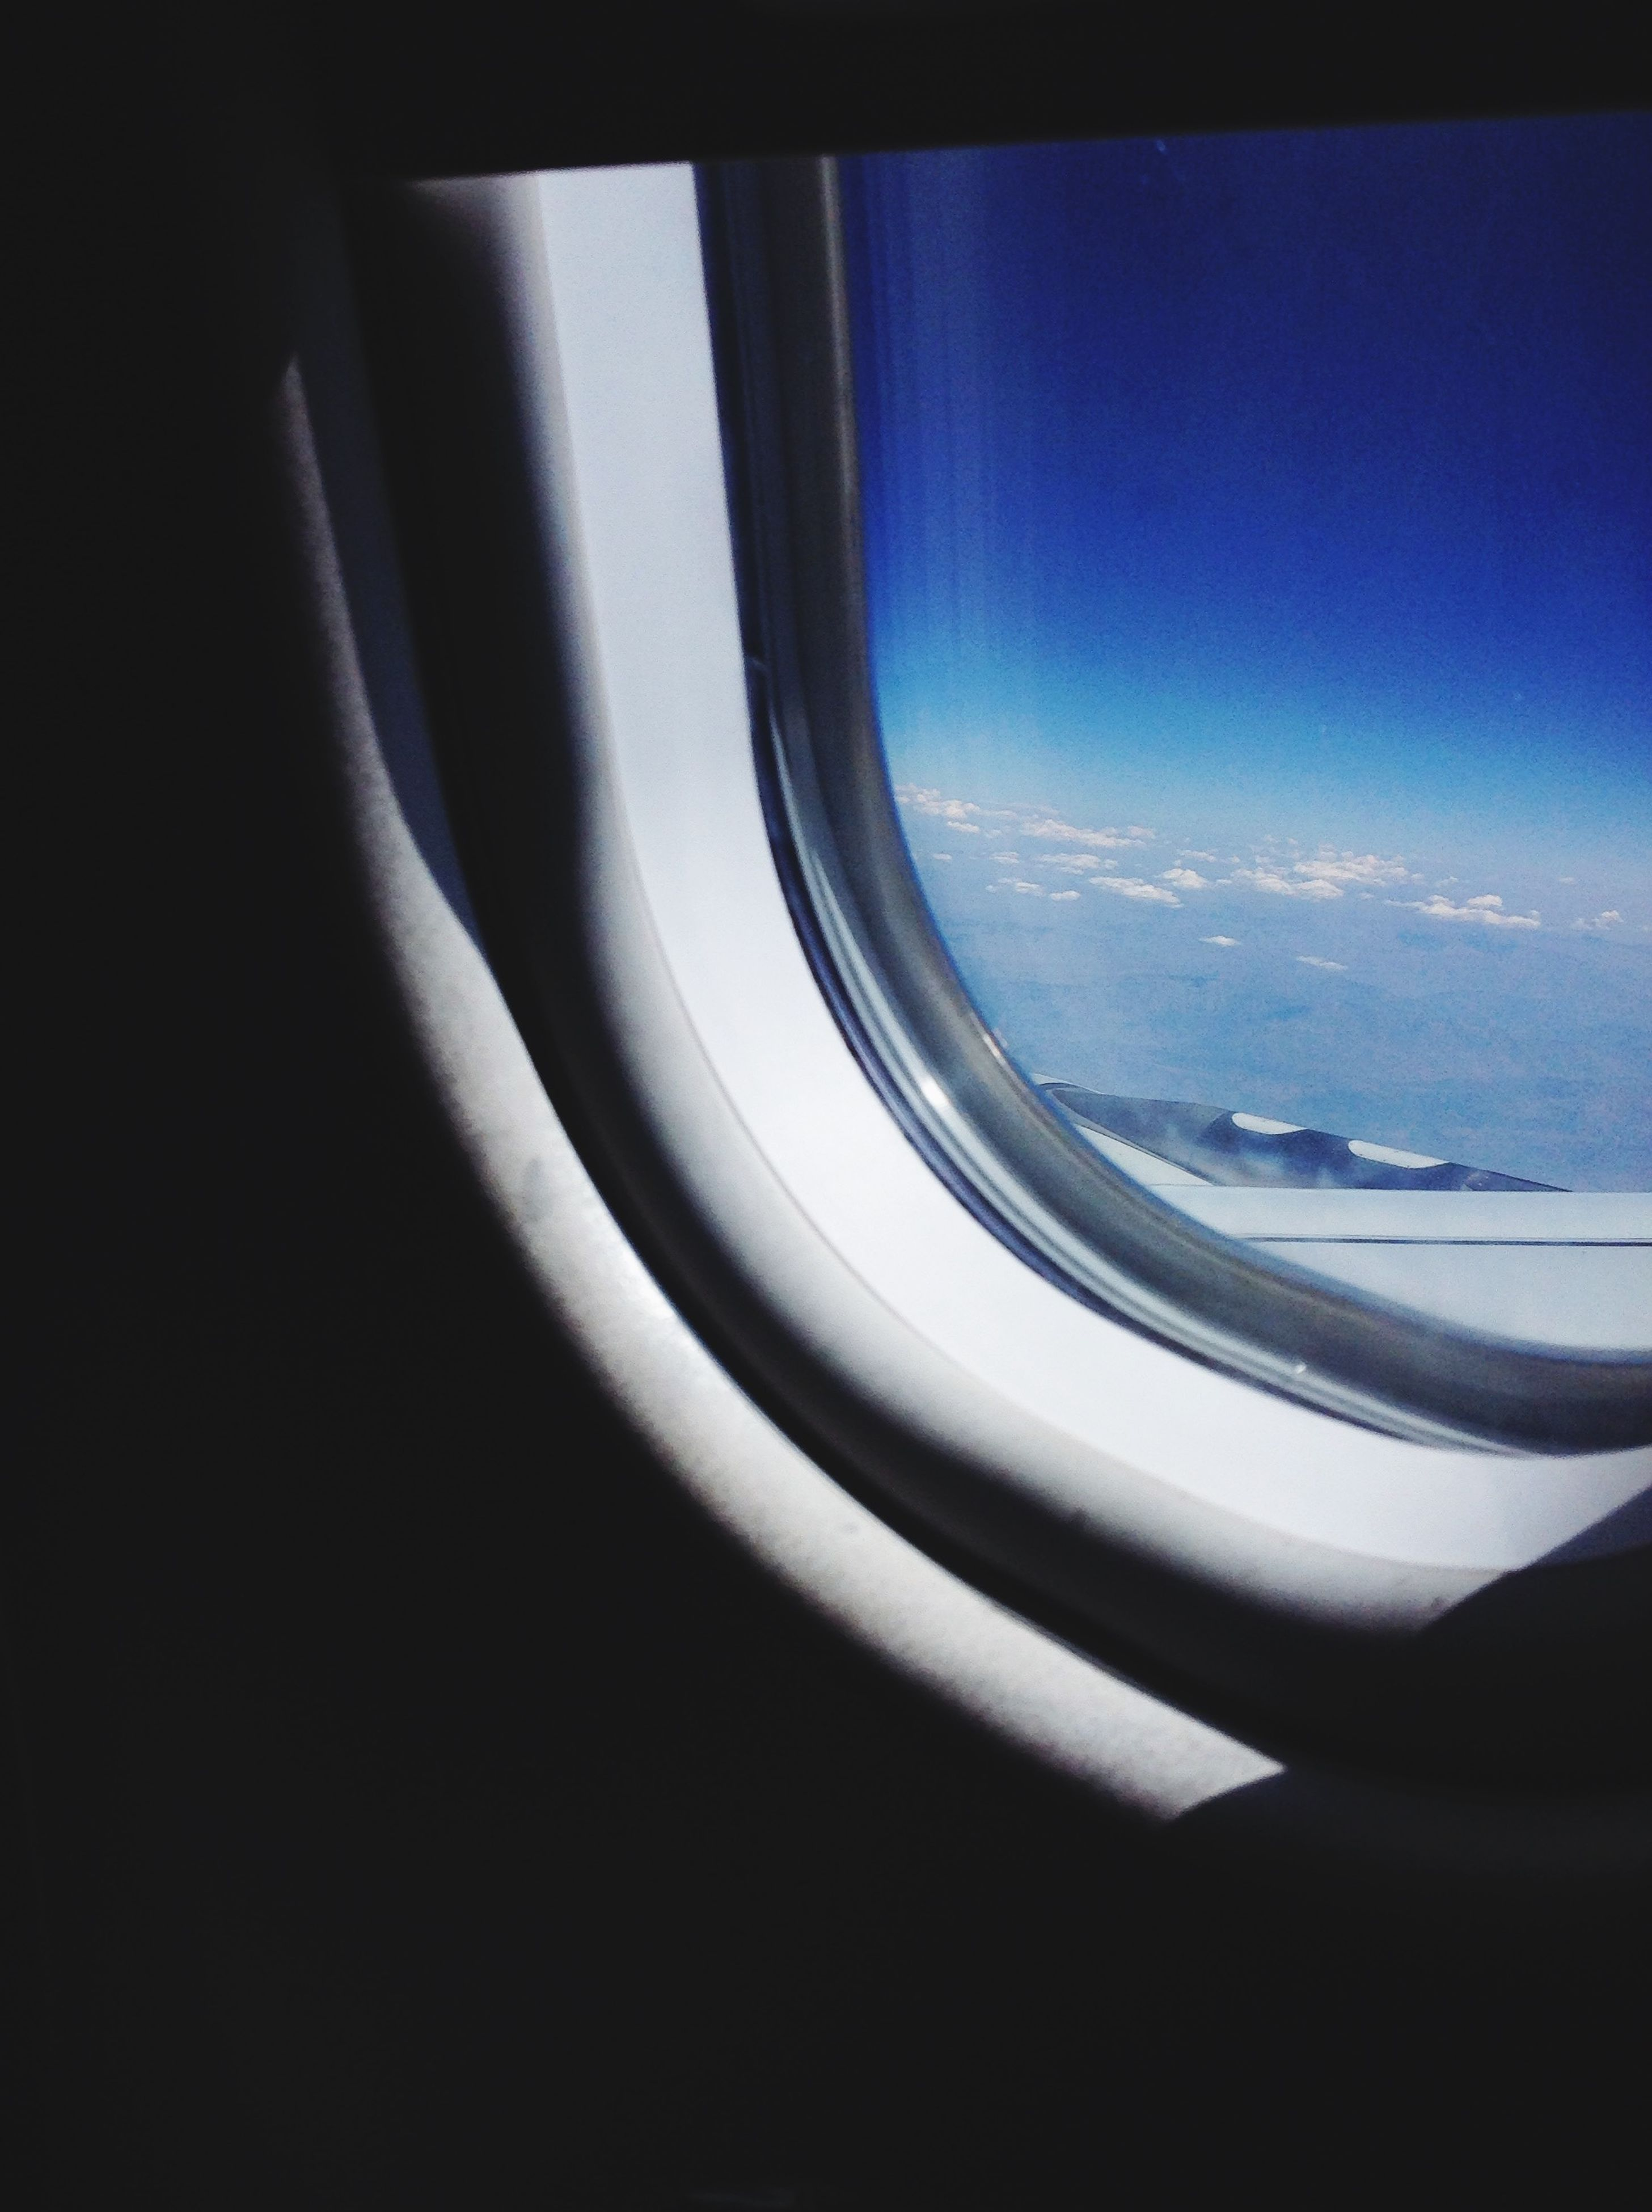 transportation, window, vehicle interior, indoors, airplane, transparent, glass - material, mode of transport, sky, air vehicle, part of, travel, blue, cropped, copy space, clear sky, journey, aerial view, cold temperature, no people